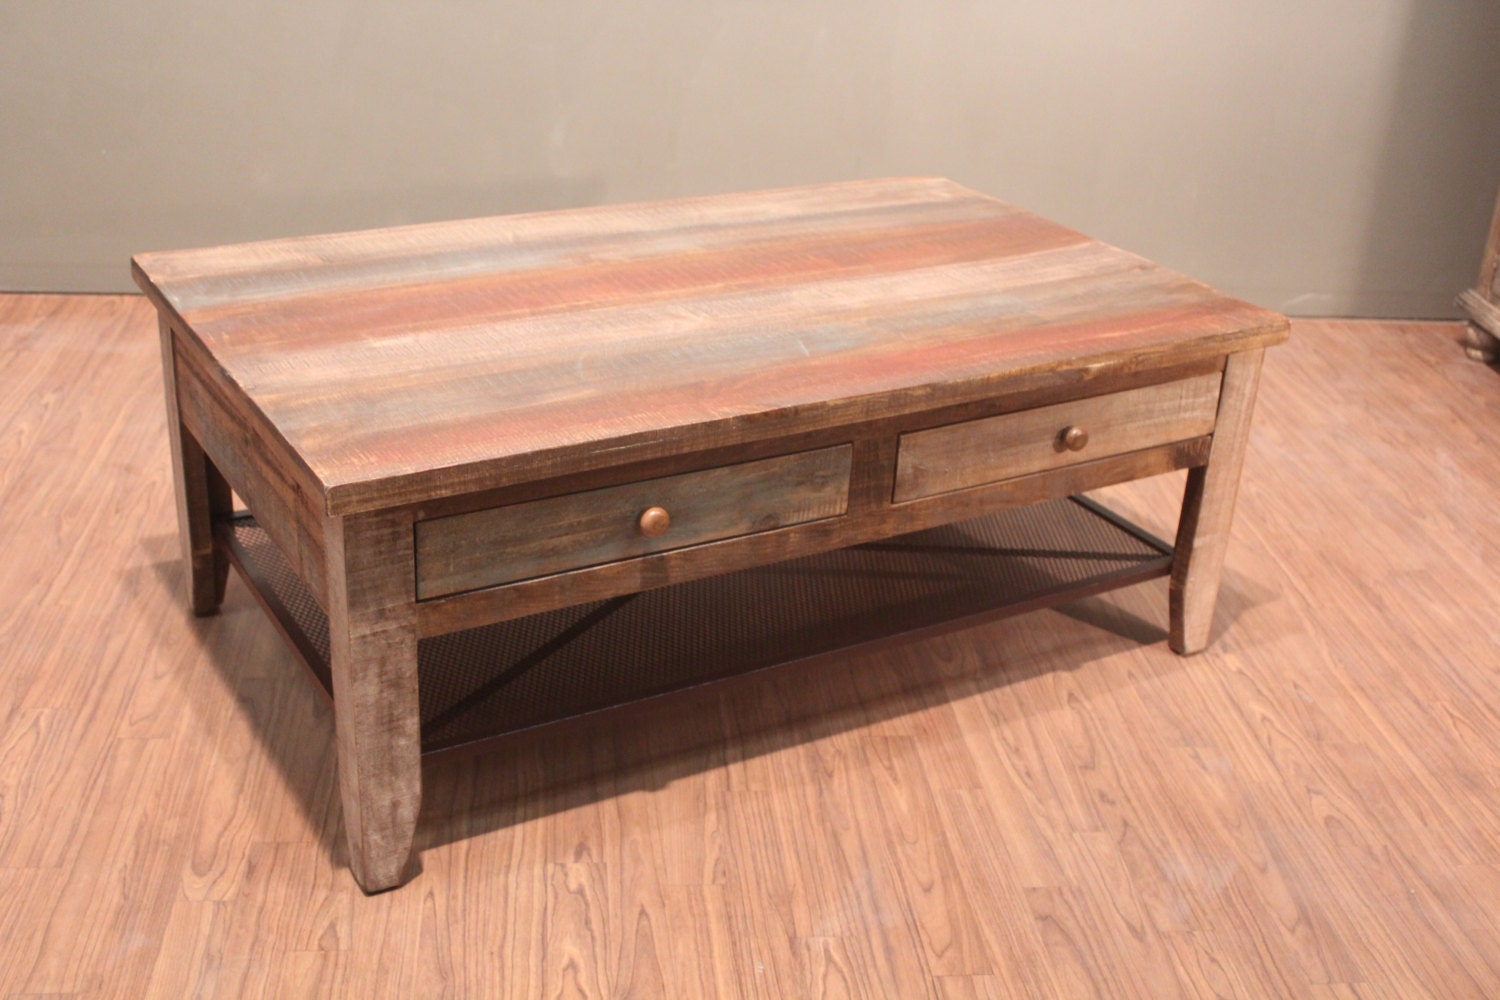 Antique Rustic Style Solid Wood Coffee Table With Drawers